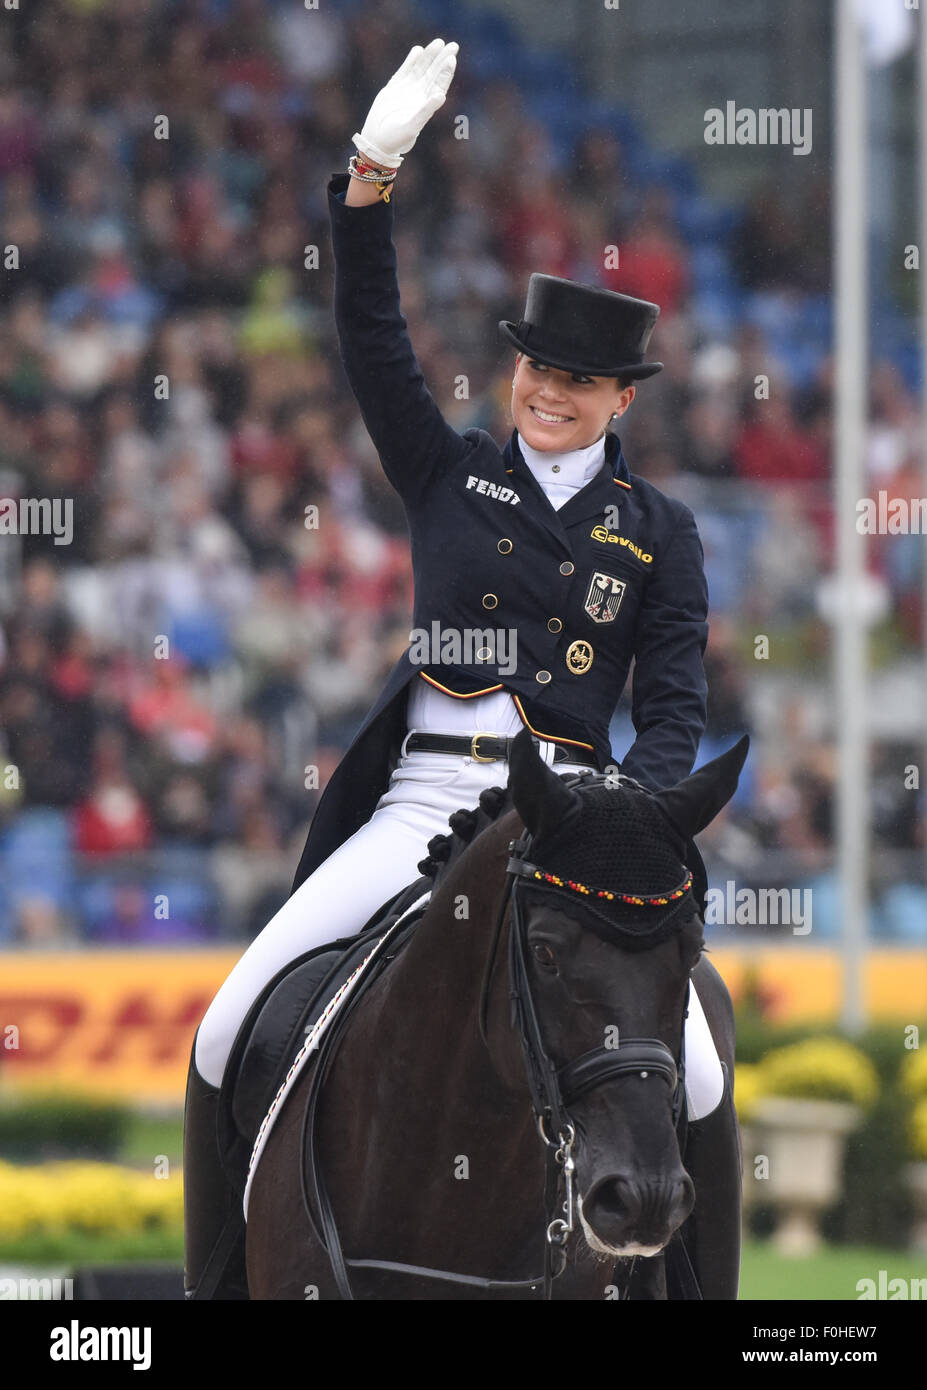 Kristina Broering-Sprehe of Germany gestures on her horse